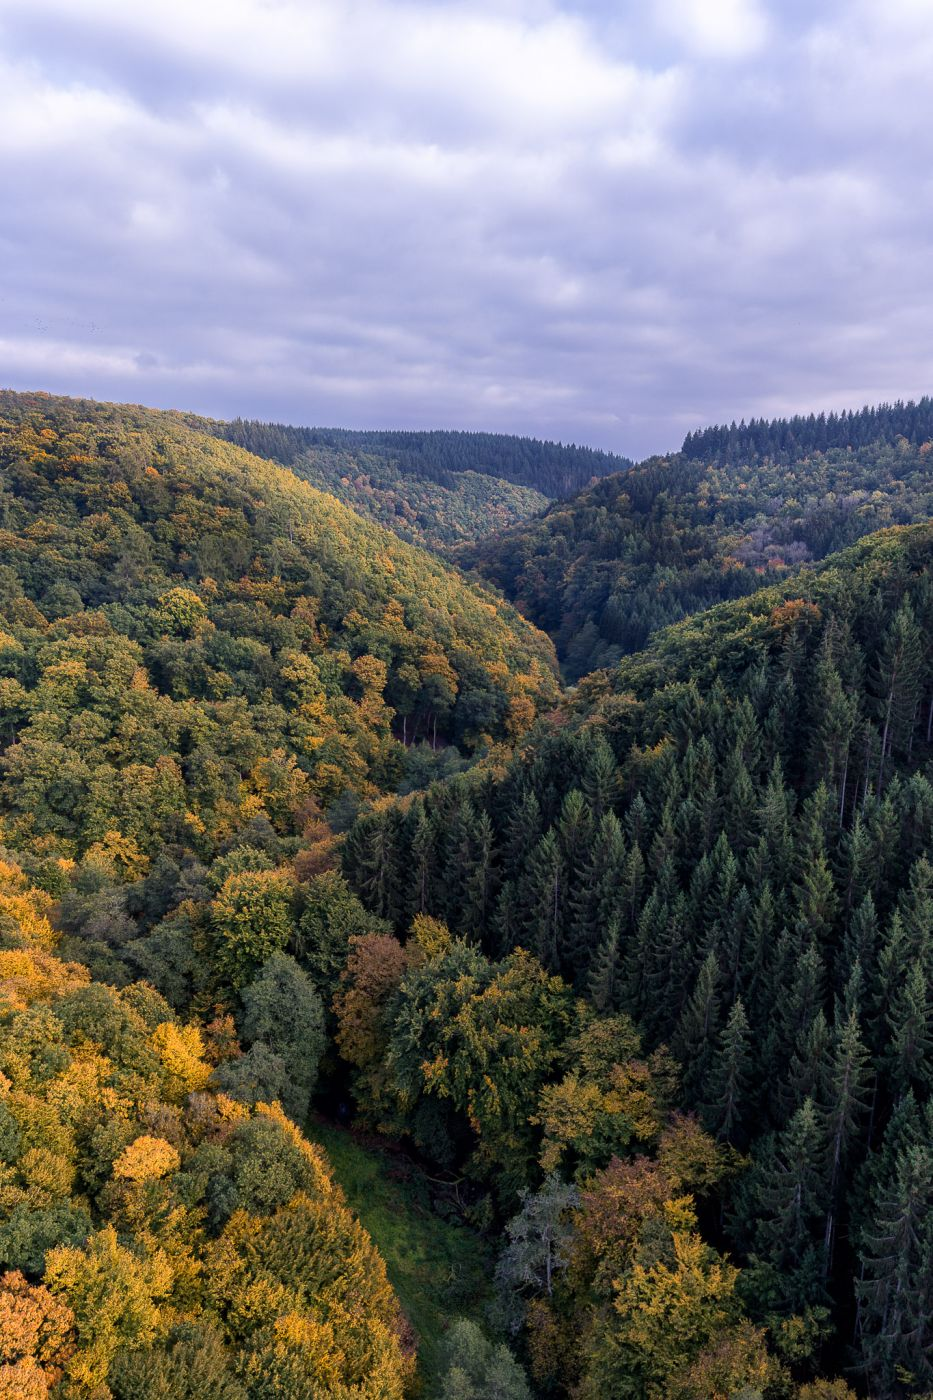 View from Geierlay, Germany